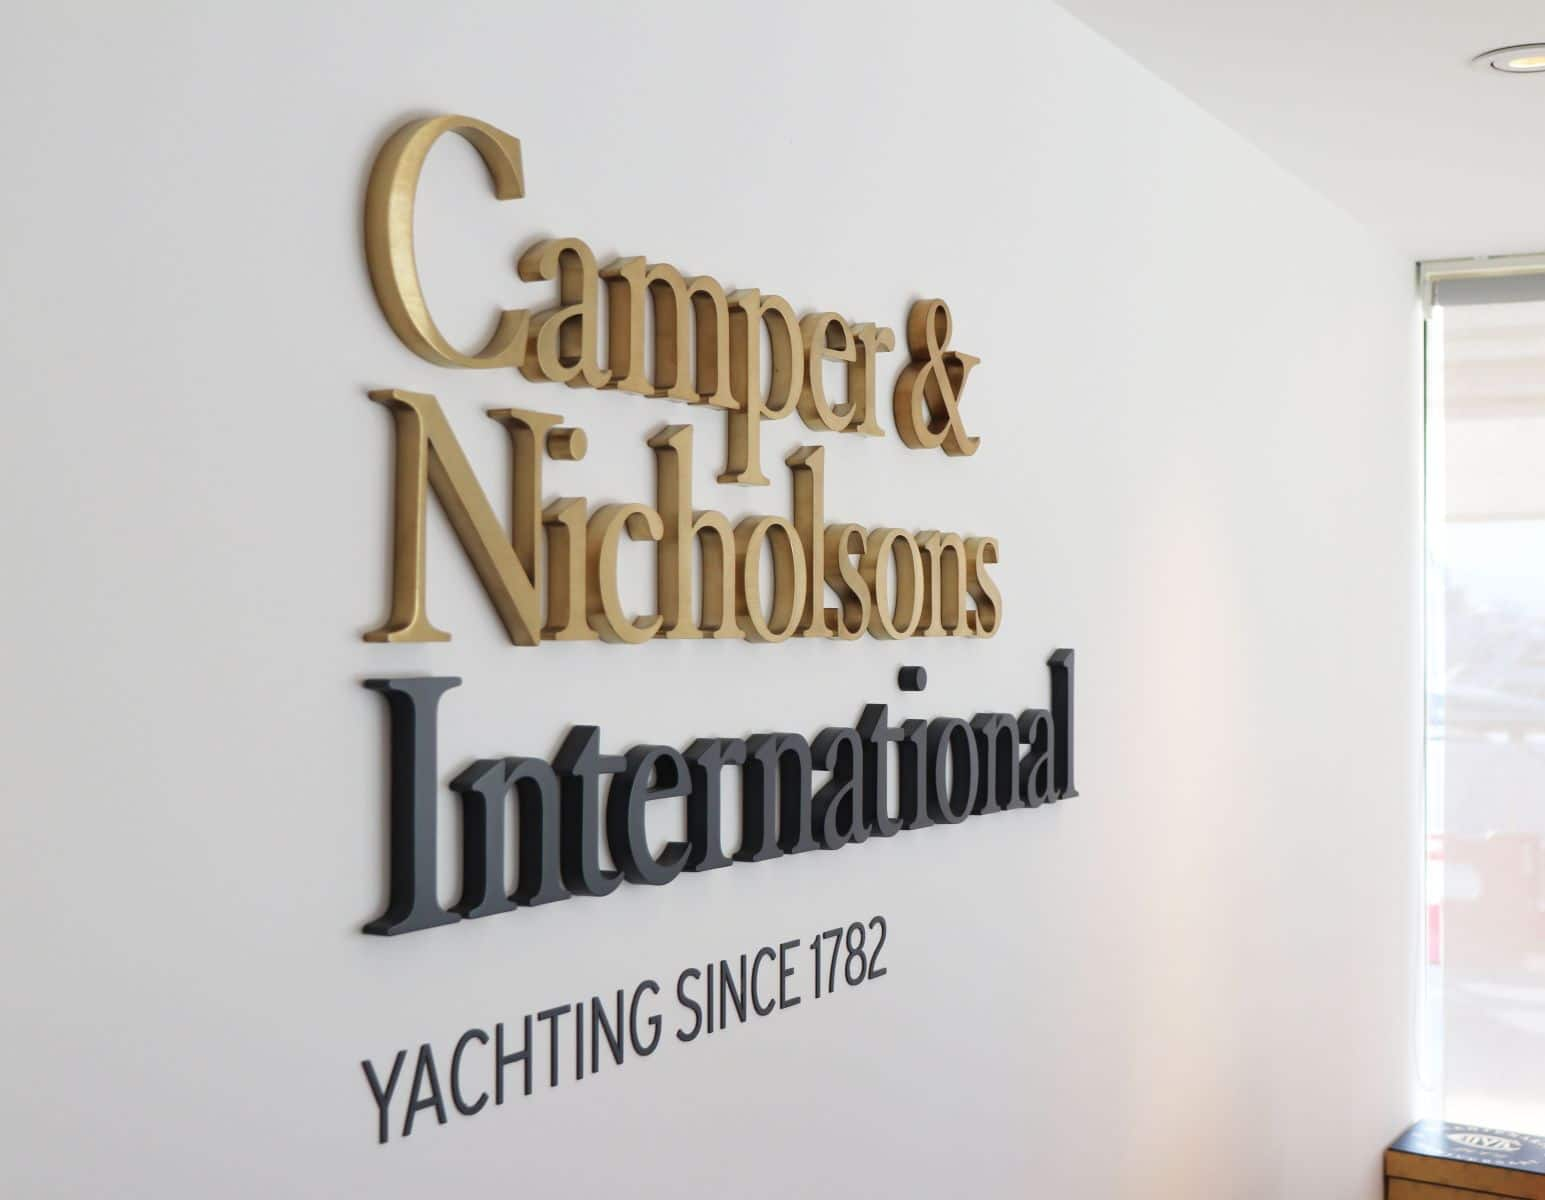 enseigne-metal-yachting-cannes-camper-and-nicholsons-2